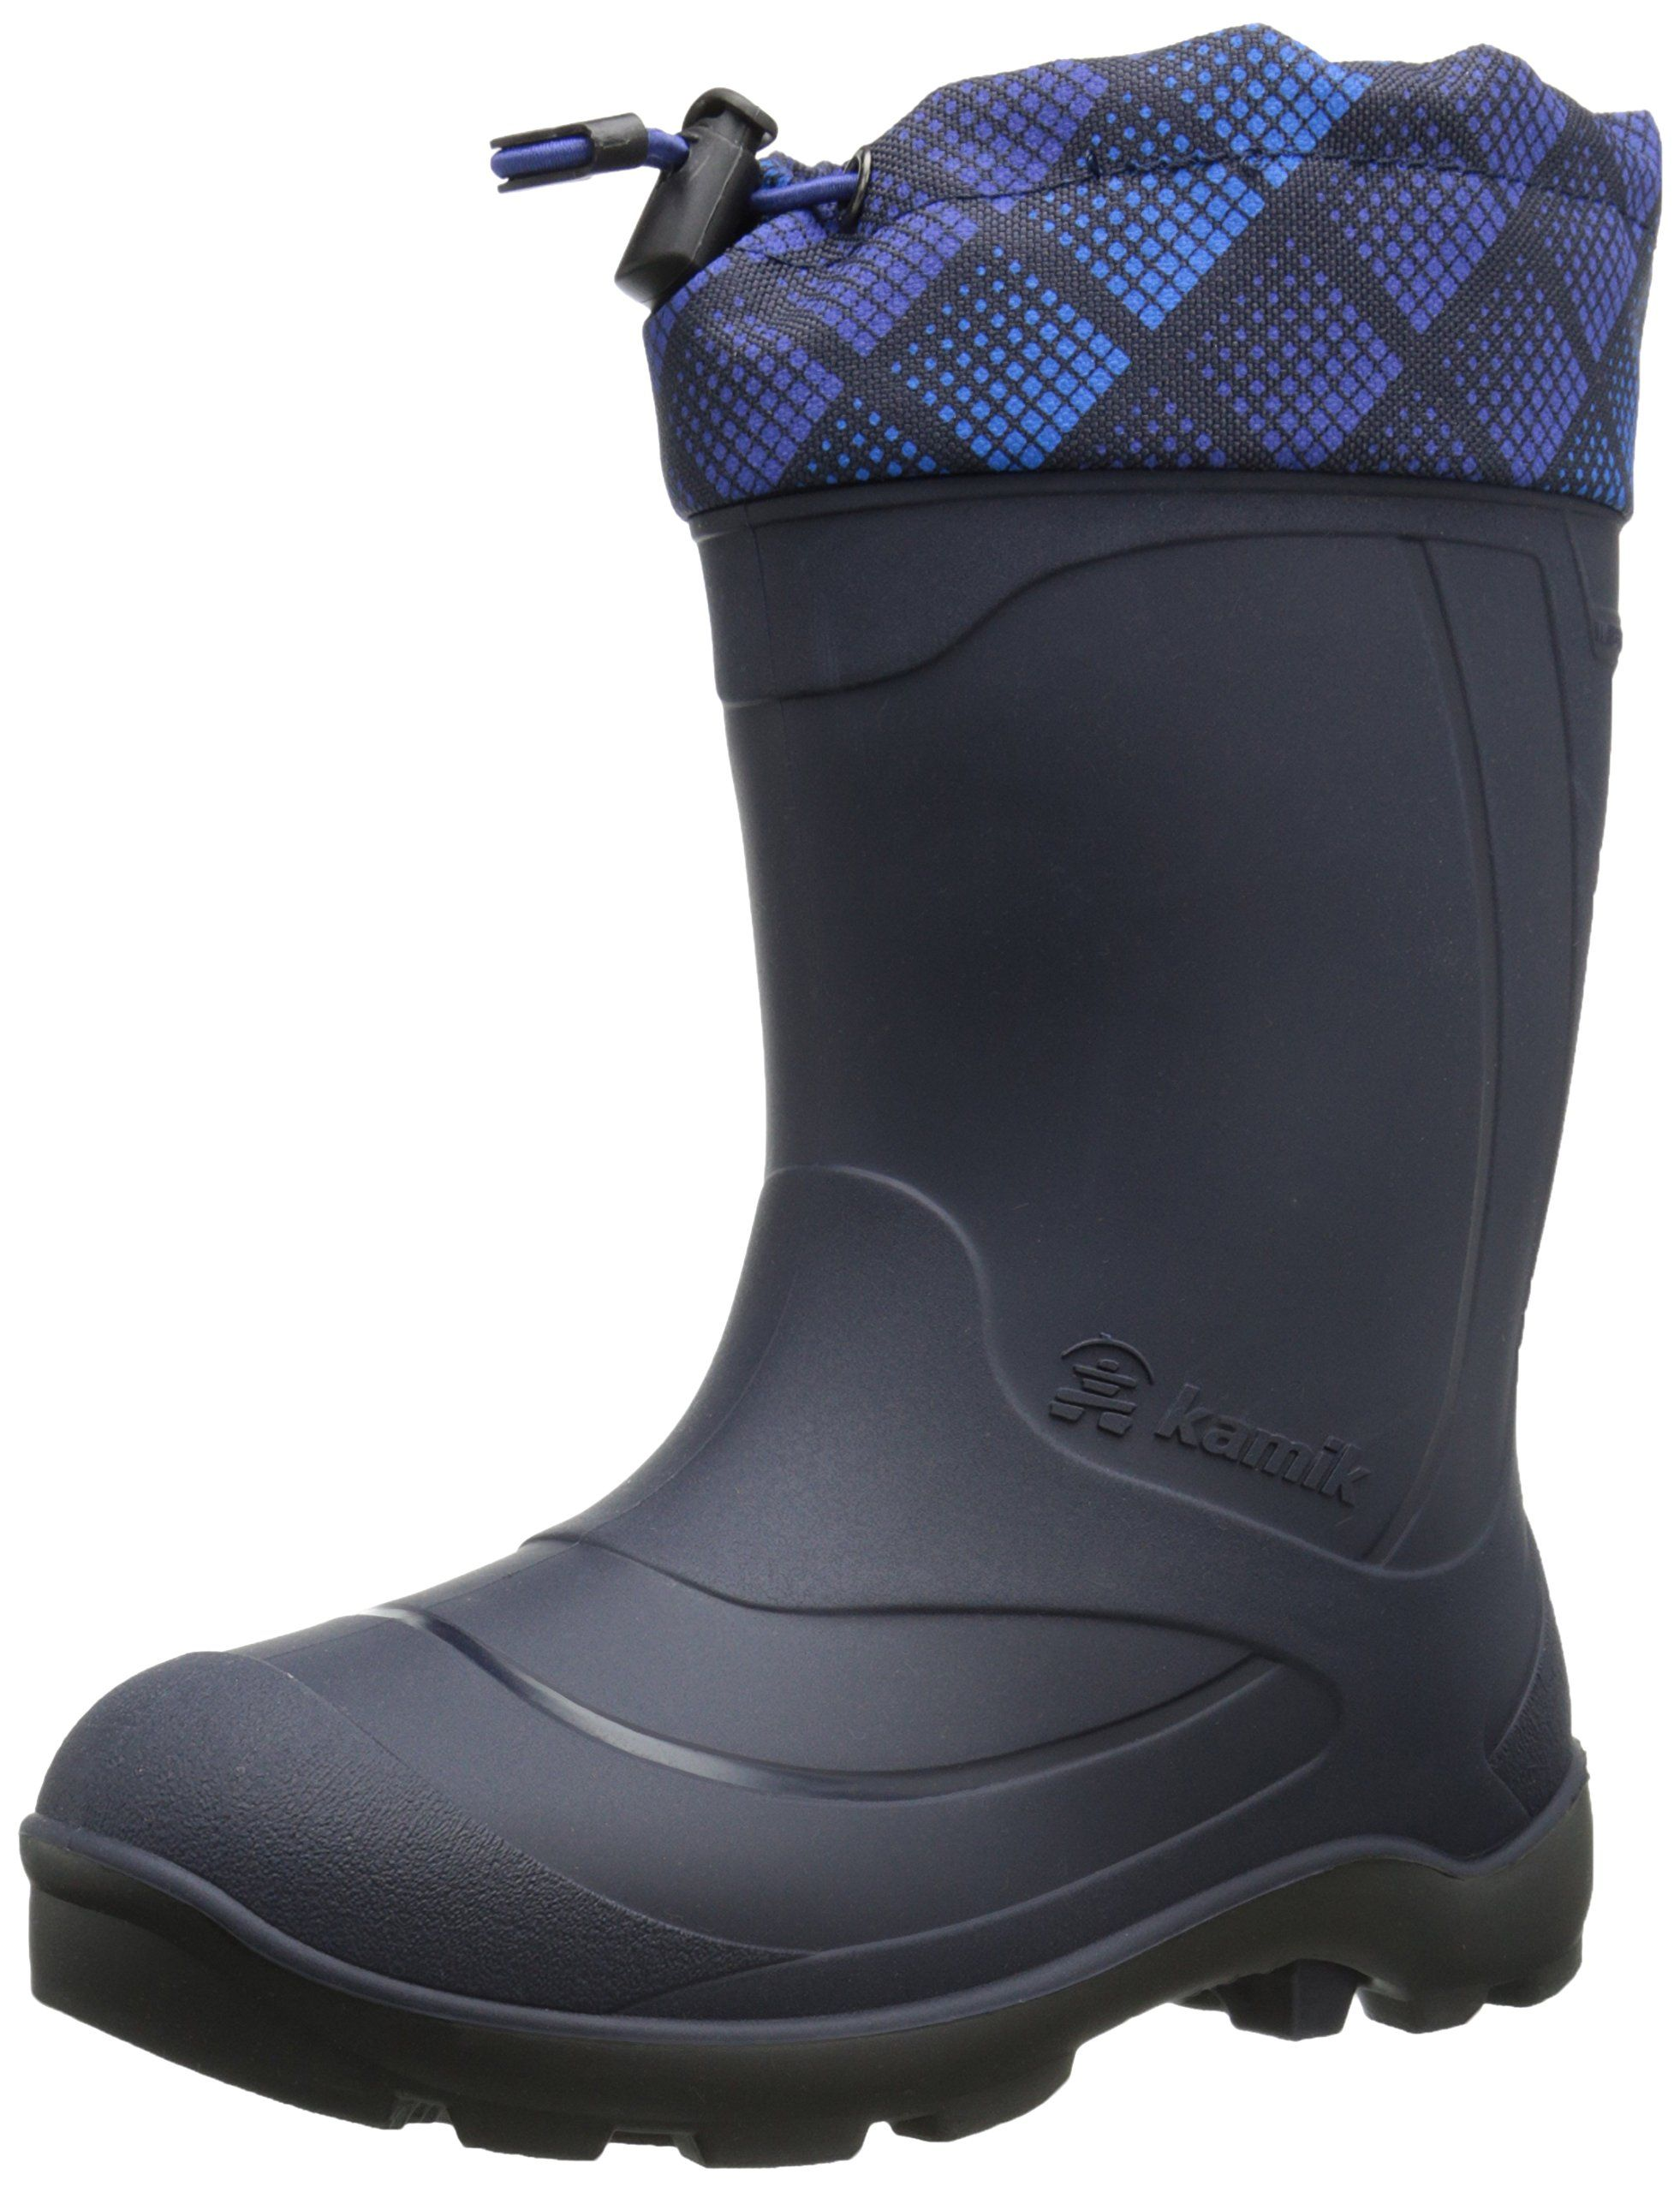 Kamik Snobuster2 Snow Boot Toddler Little Kid Big Kid Navy 6 M Us Big Kid Made In Canada Waterproof Minus 25f Comfort R Boots Insulated Boots Barn Boots